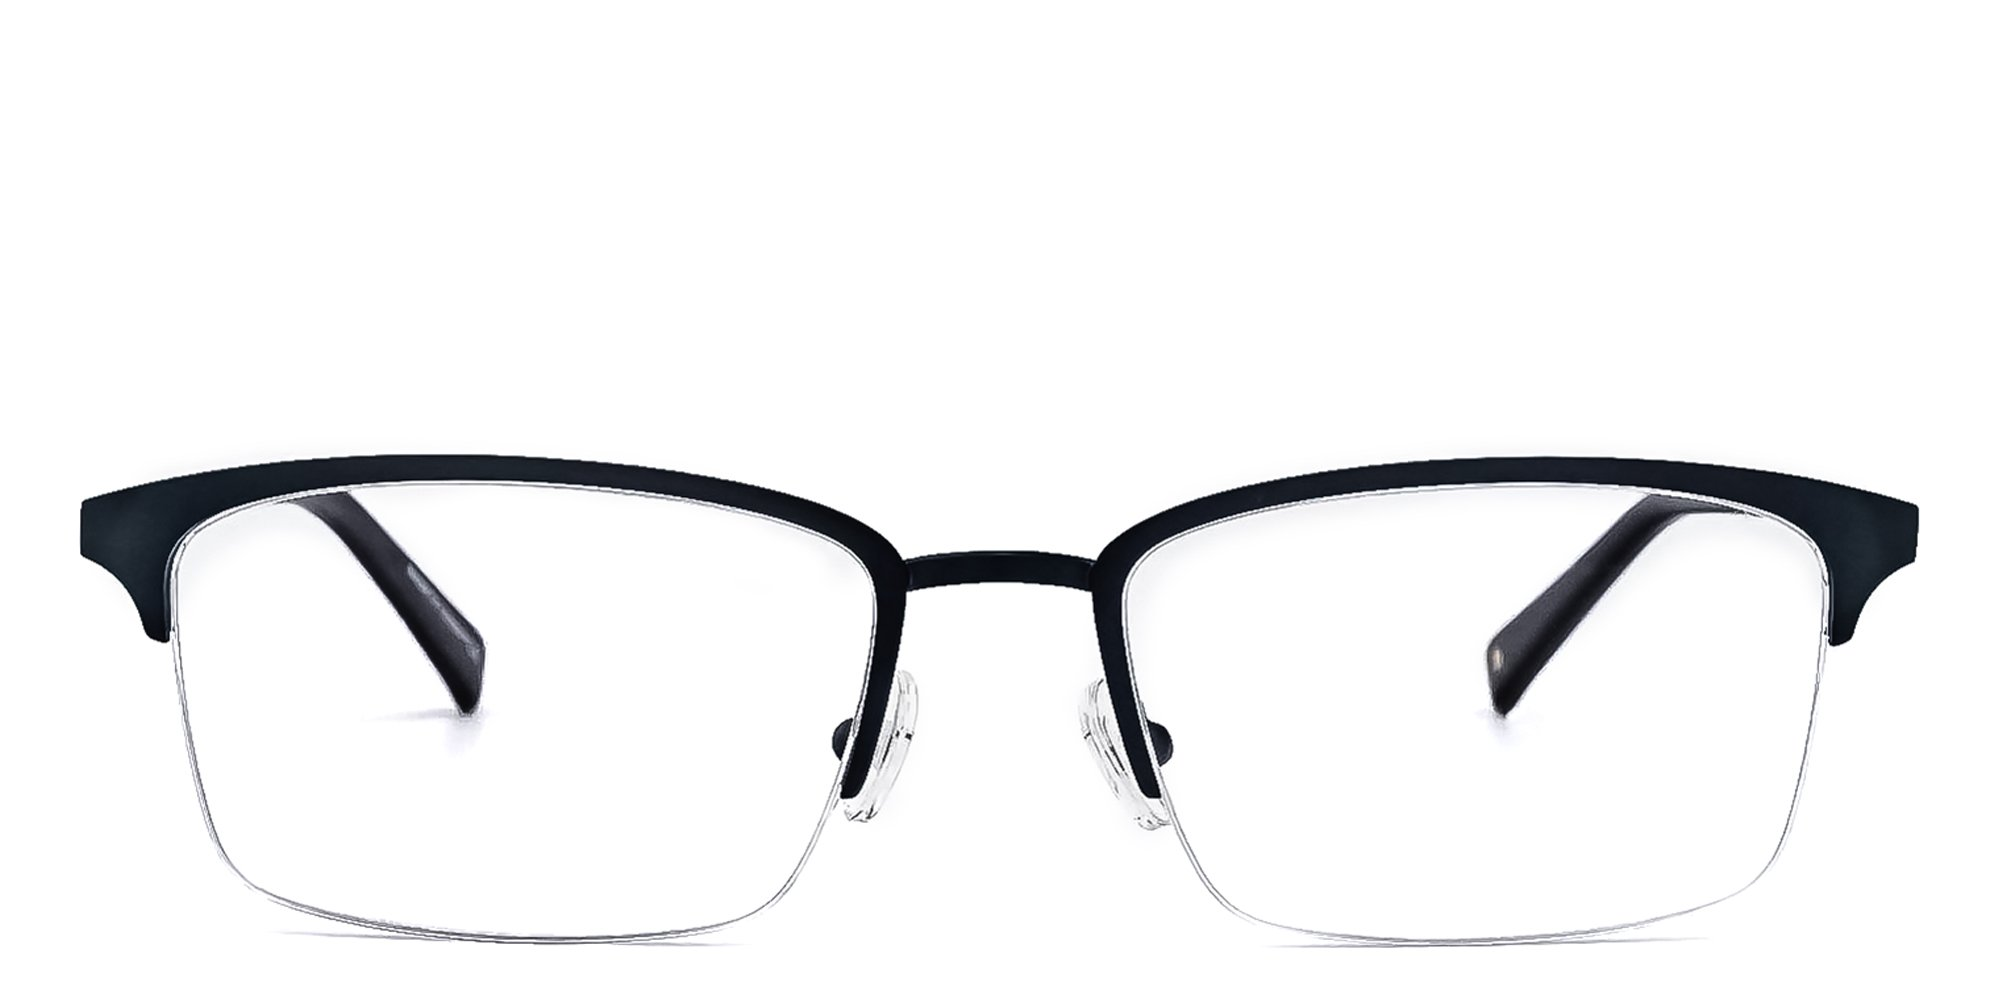 Image with Glasses